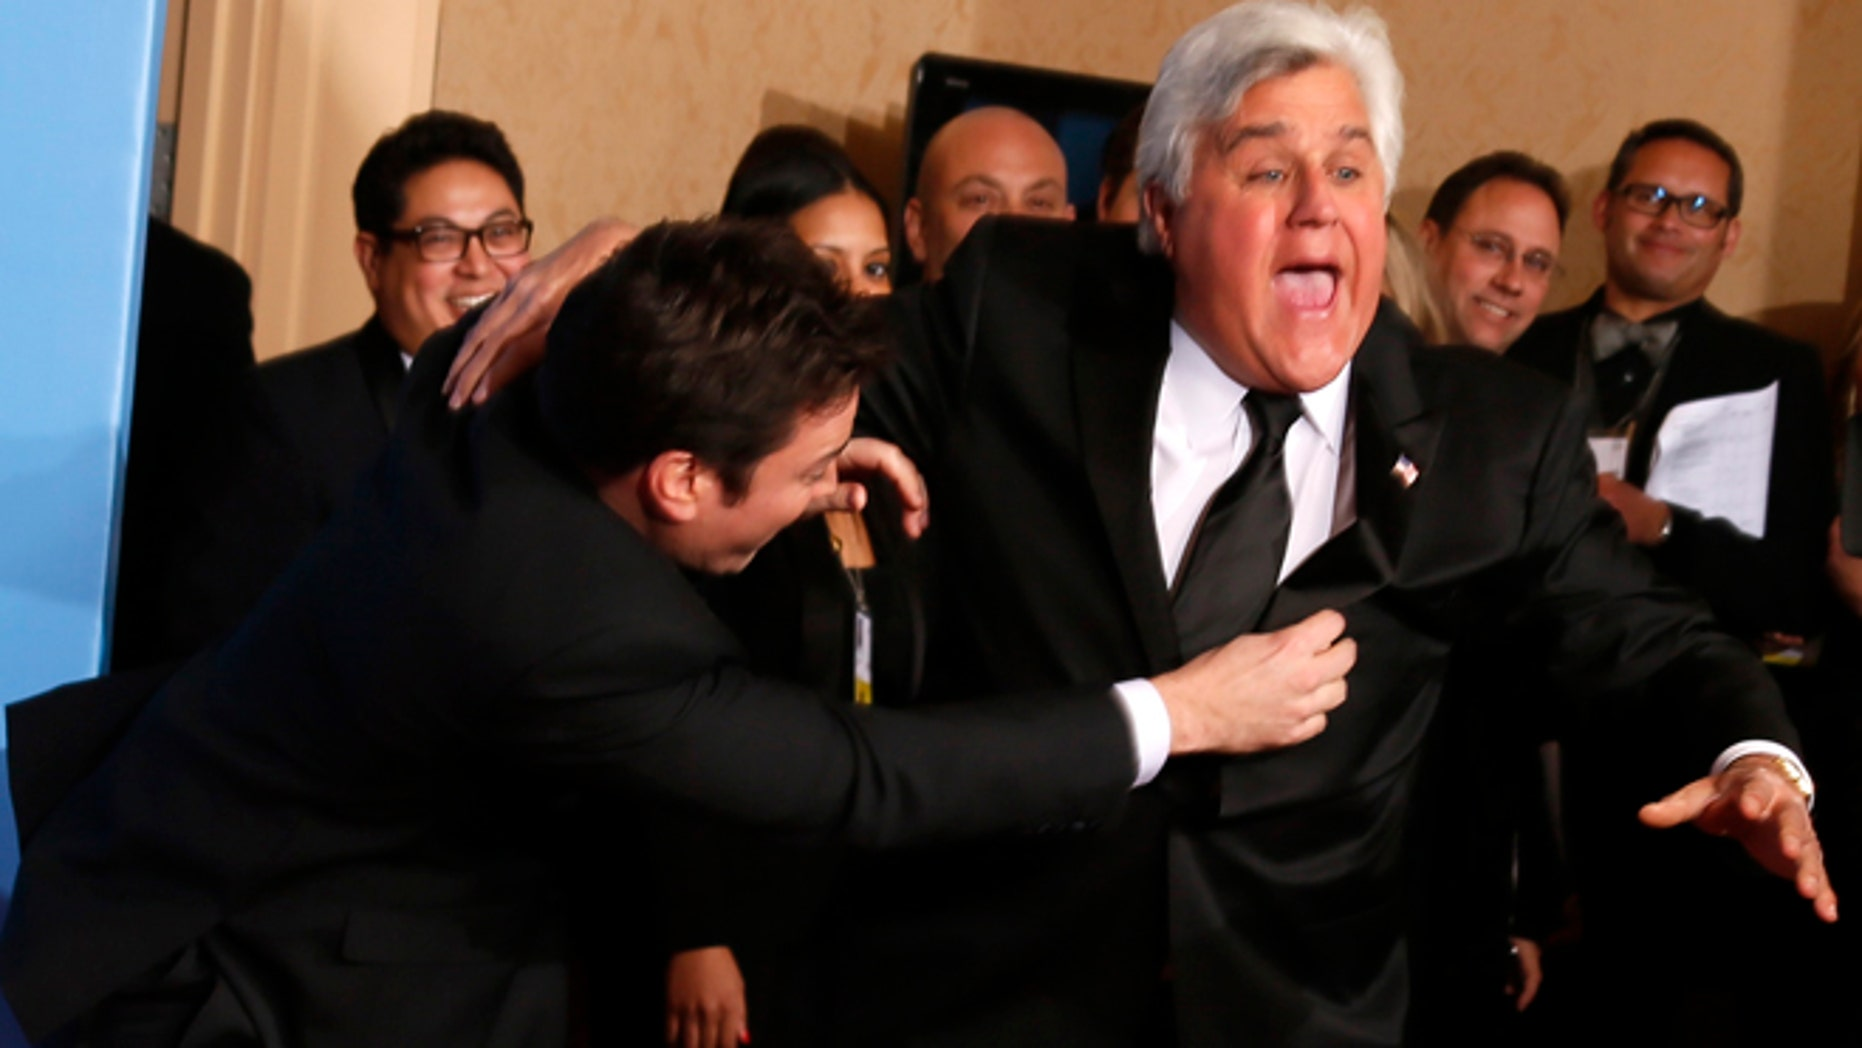 Late night talk show hosts Jimmy Fallon (L) and Jay Leno joke around backstage at the 70th annual Golden Globe Awards in Beverly Hills, California, January 13, 2013.